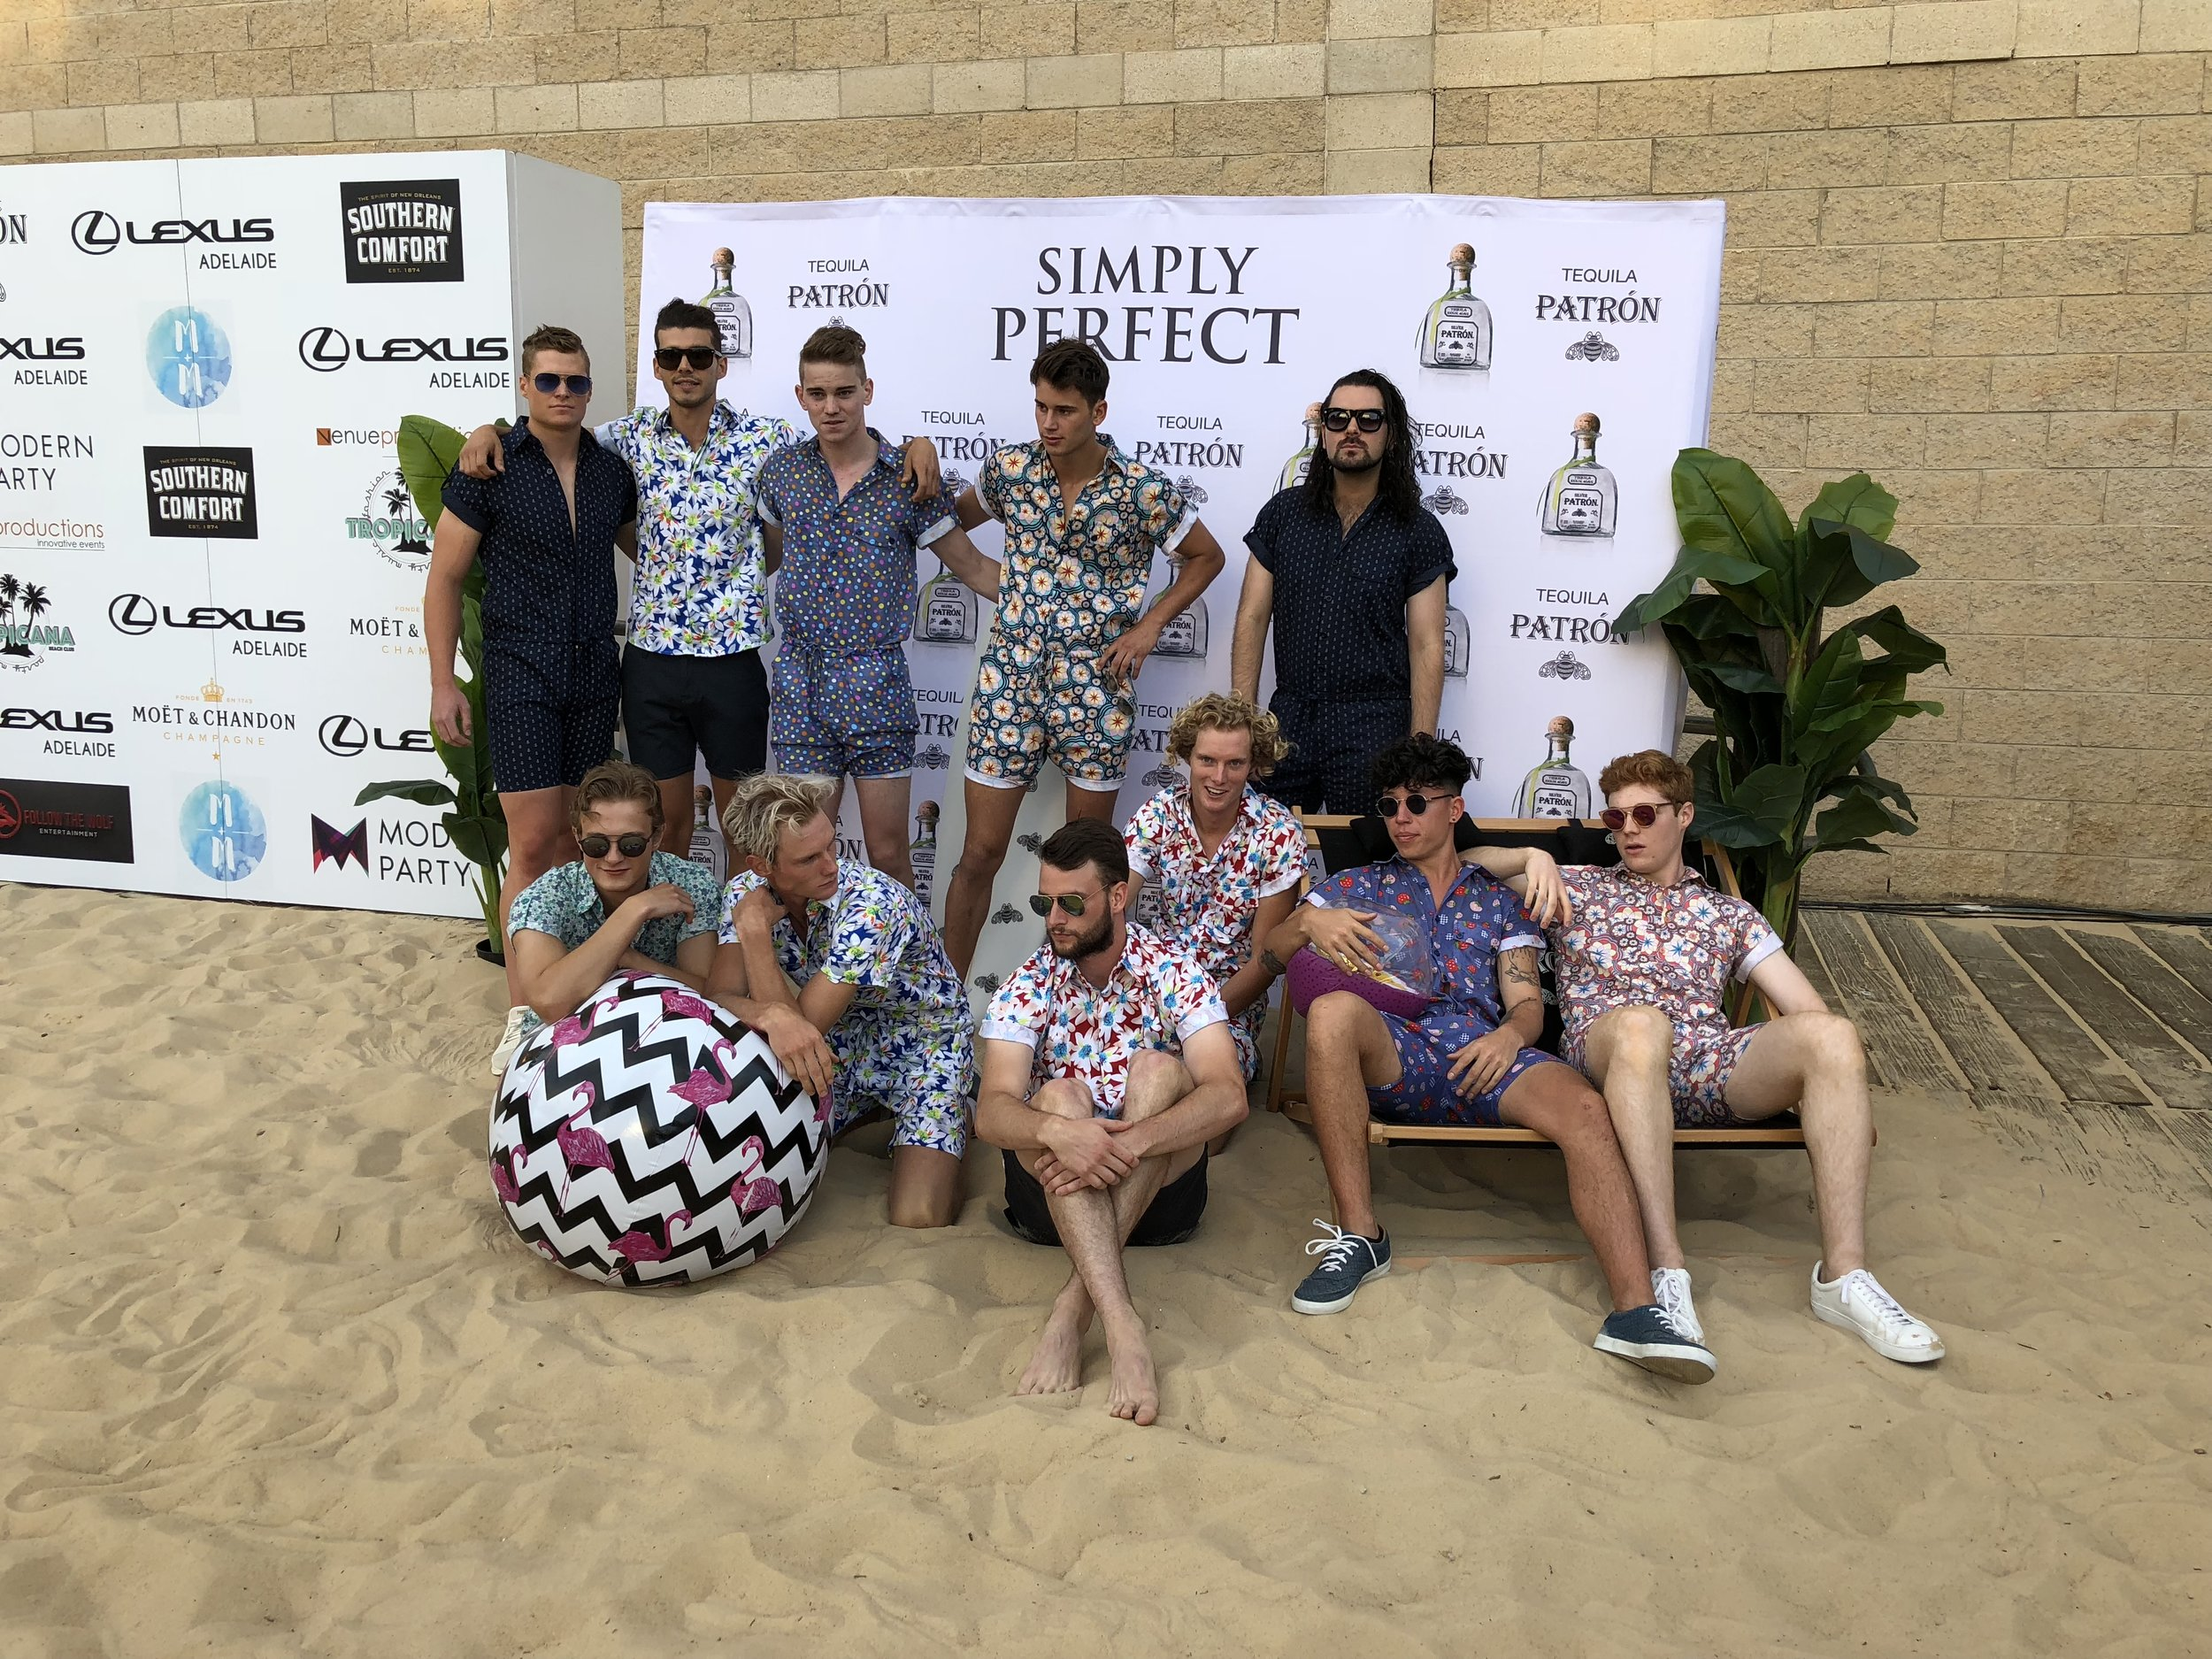 RompStomp Squad showing us rompers are for dudes too!